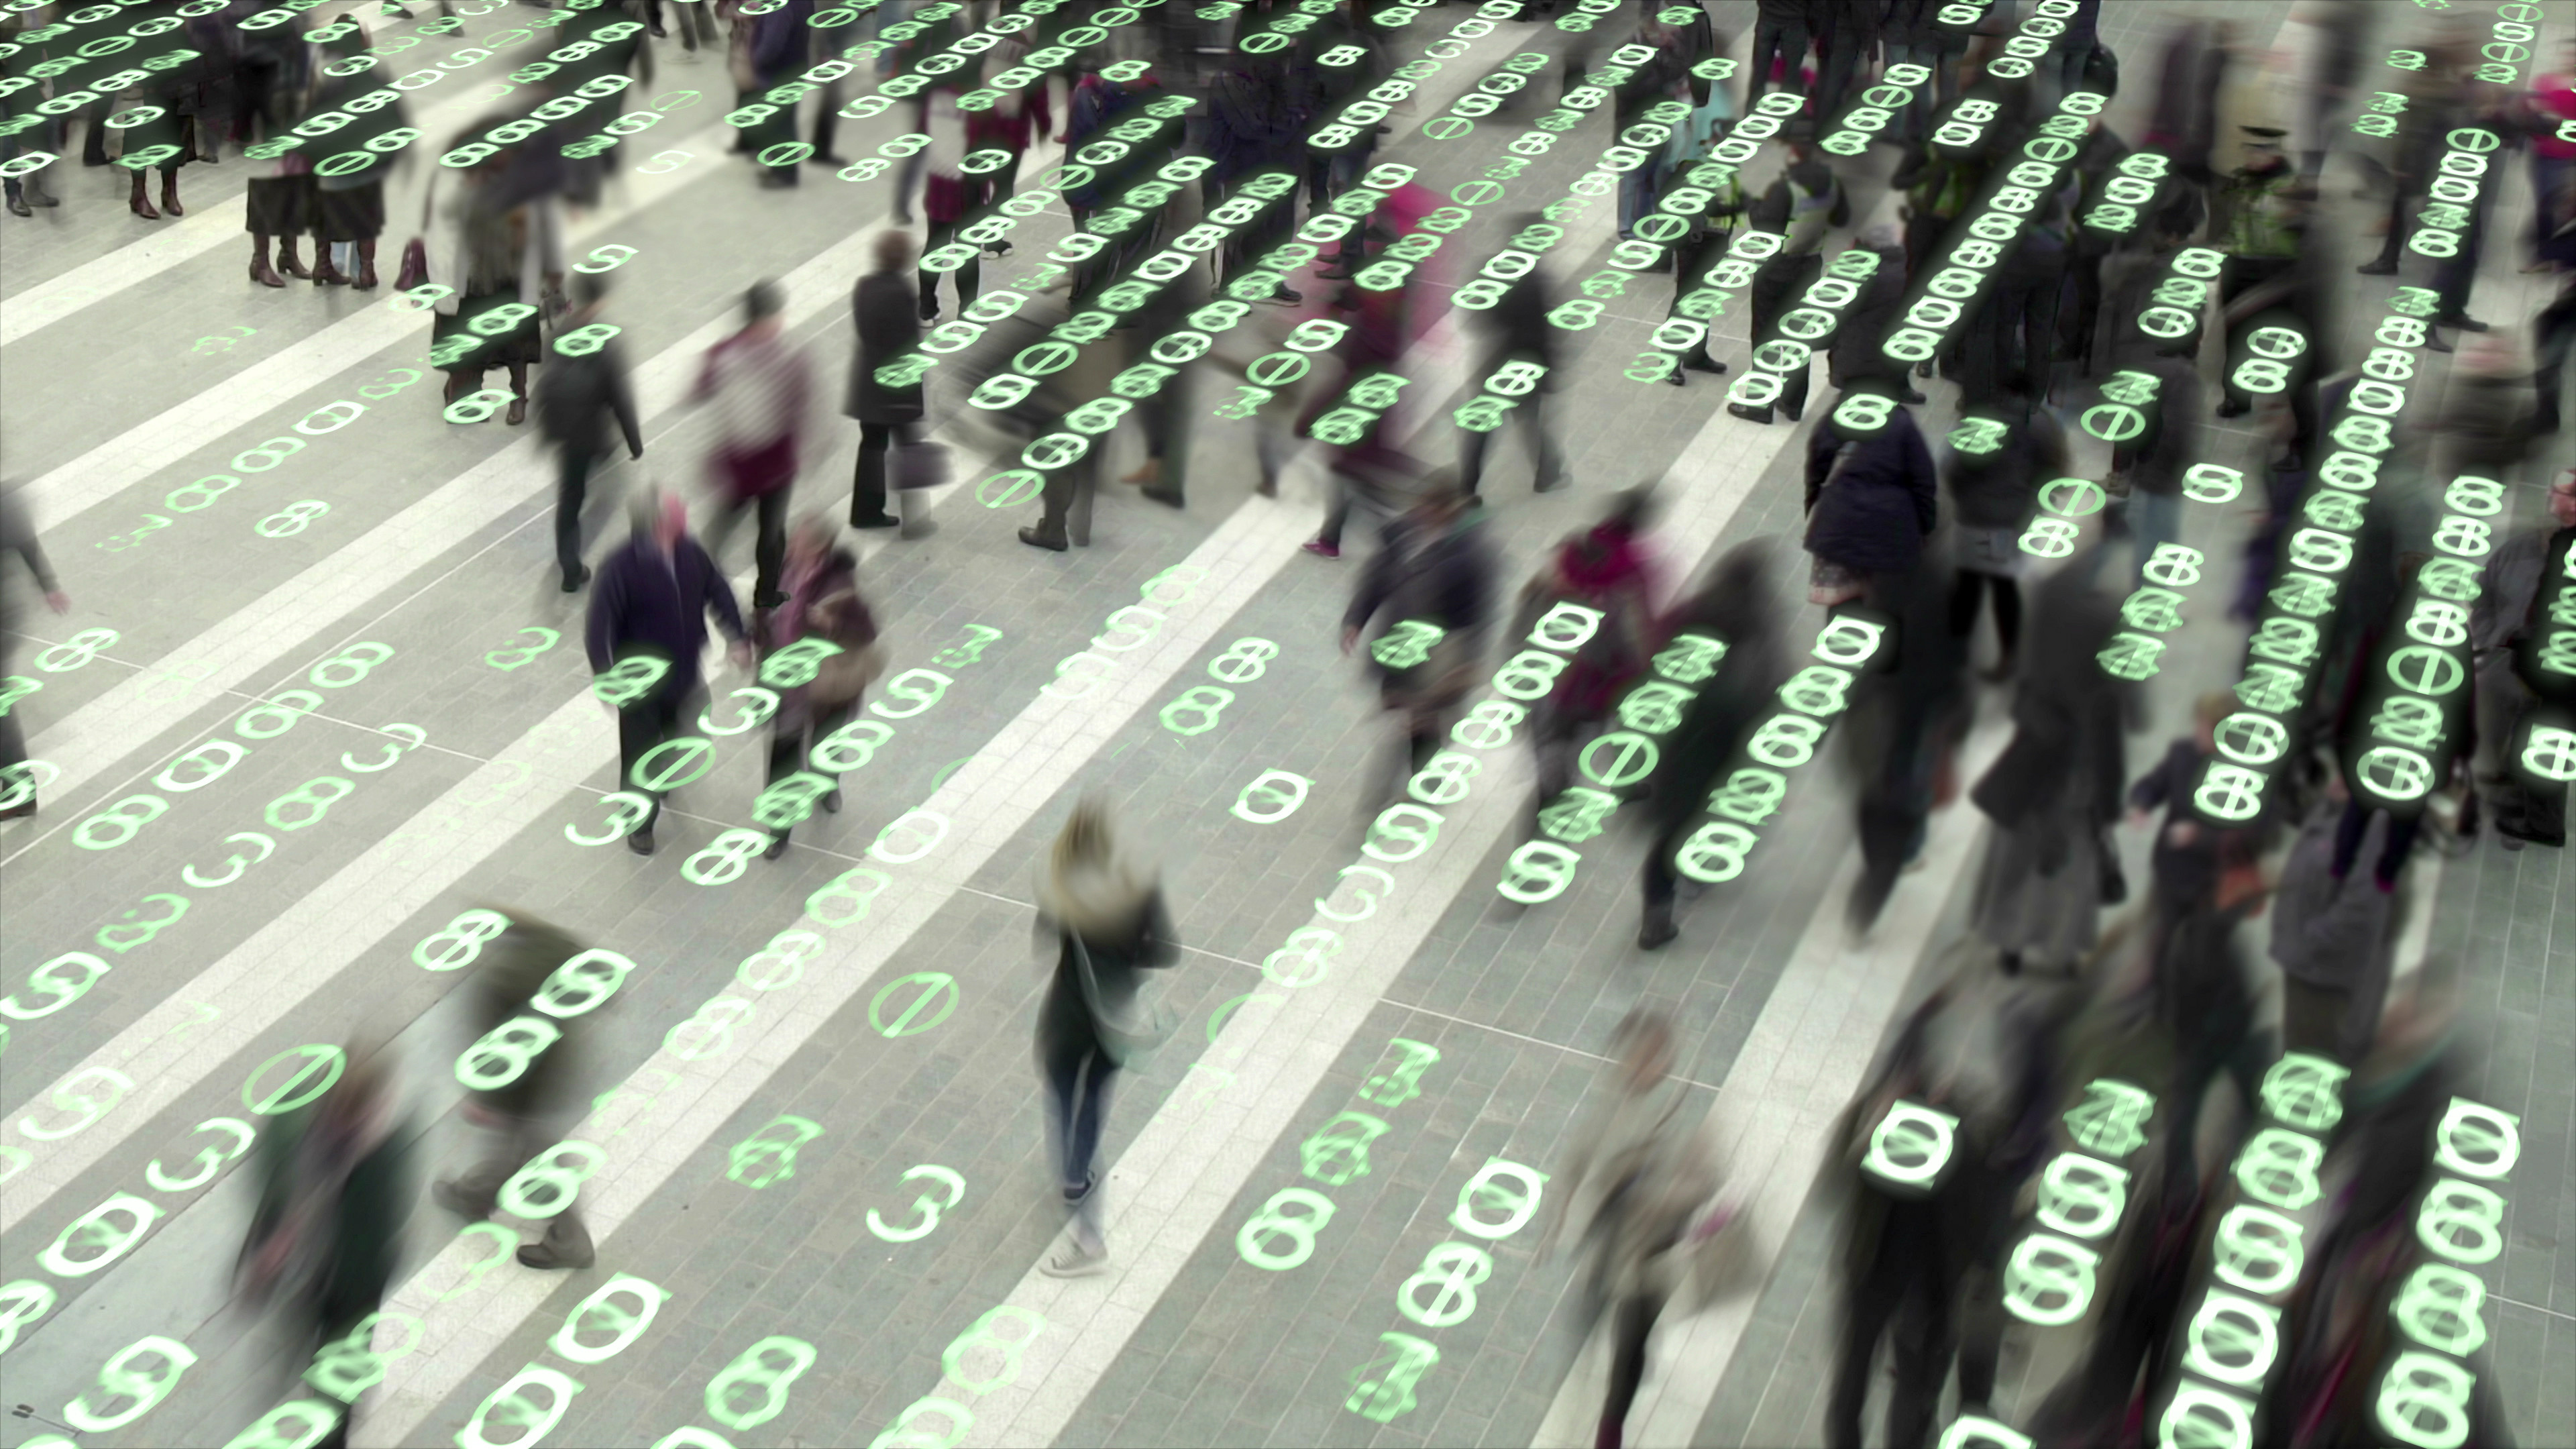 There are no right answers in the debate between data access and privacy.